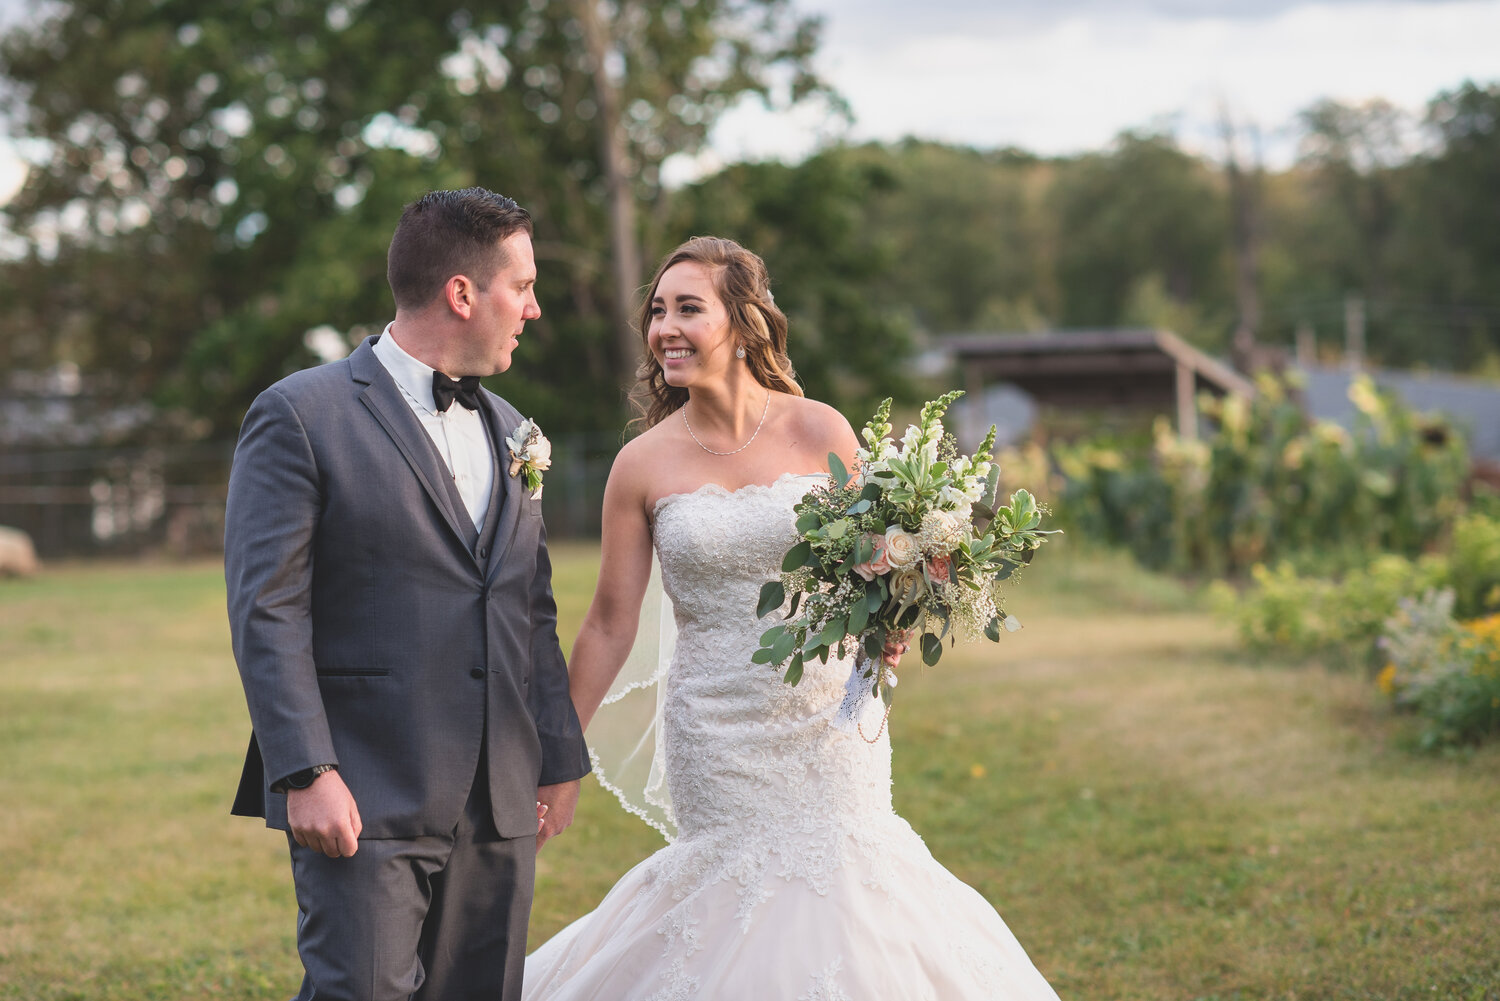 Jess and Matt - Wedding Photography Services by Devon Crowell